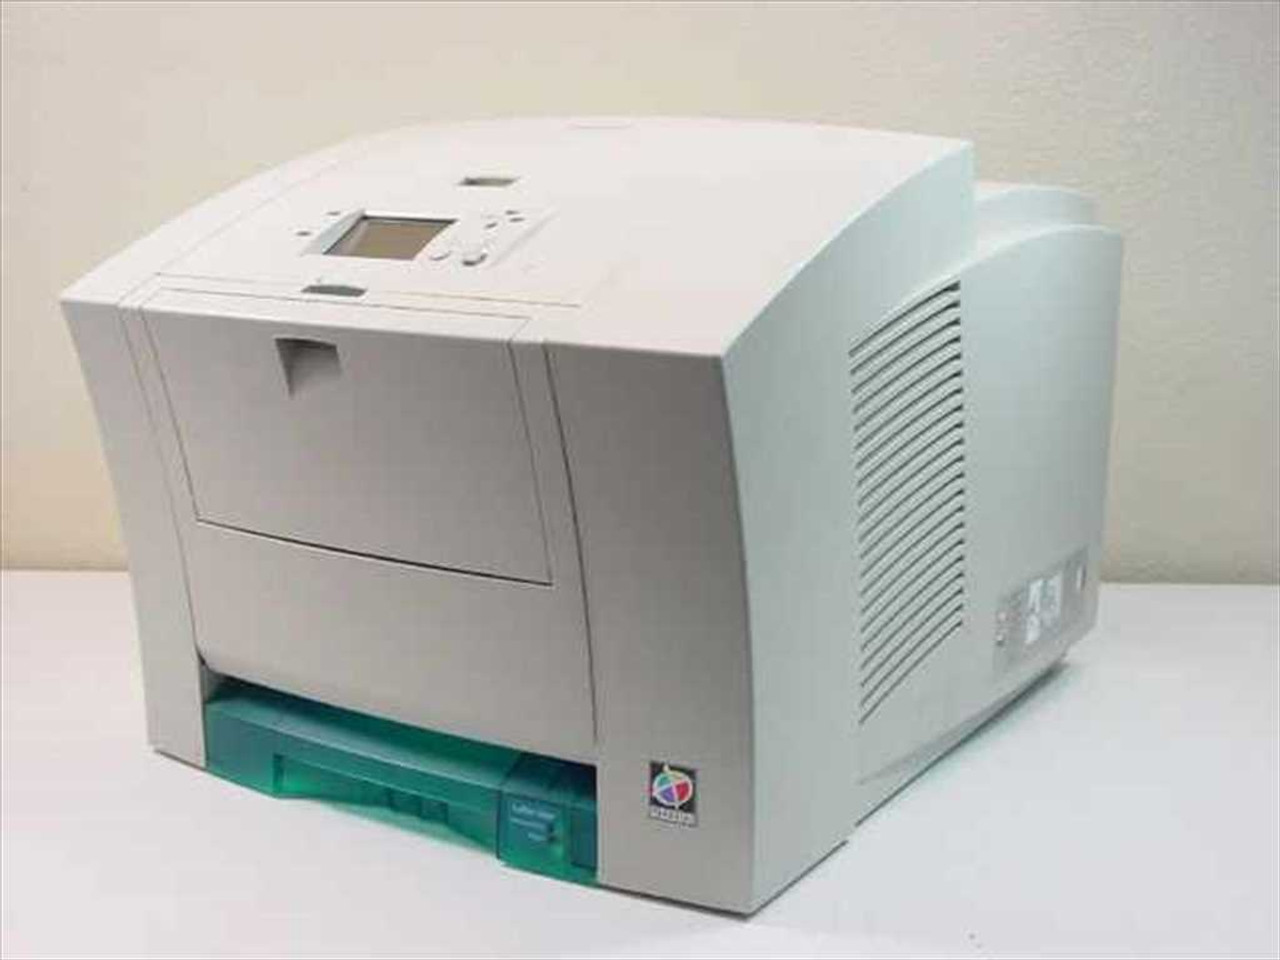 Best Parts Tektronix Phaser Solid Ink Color Printer As Is Parts Solid Ink Printer Photo Quality Solid Ink Printer Price Tektronix Phaser Solid Ink Color Printer As Is dpreview Solid Ink Printer